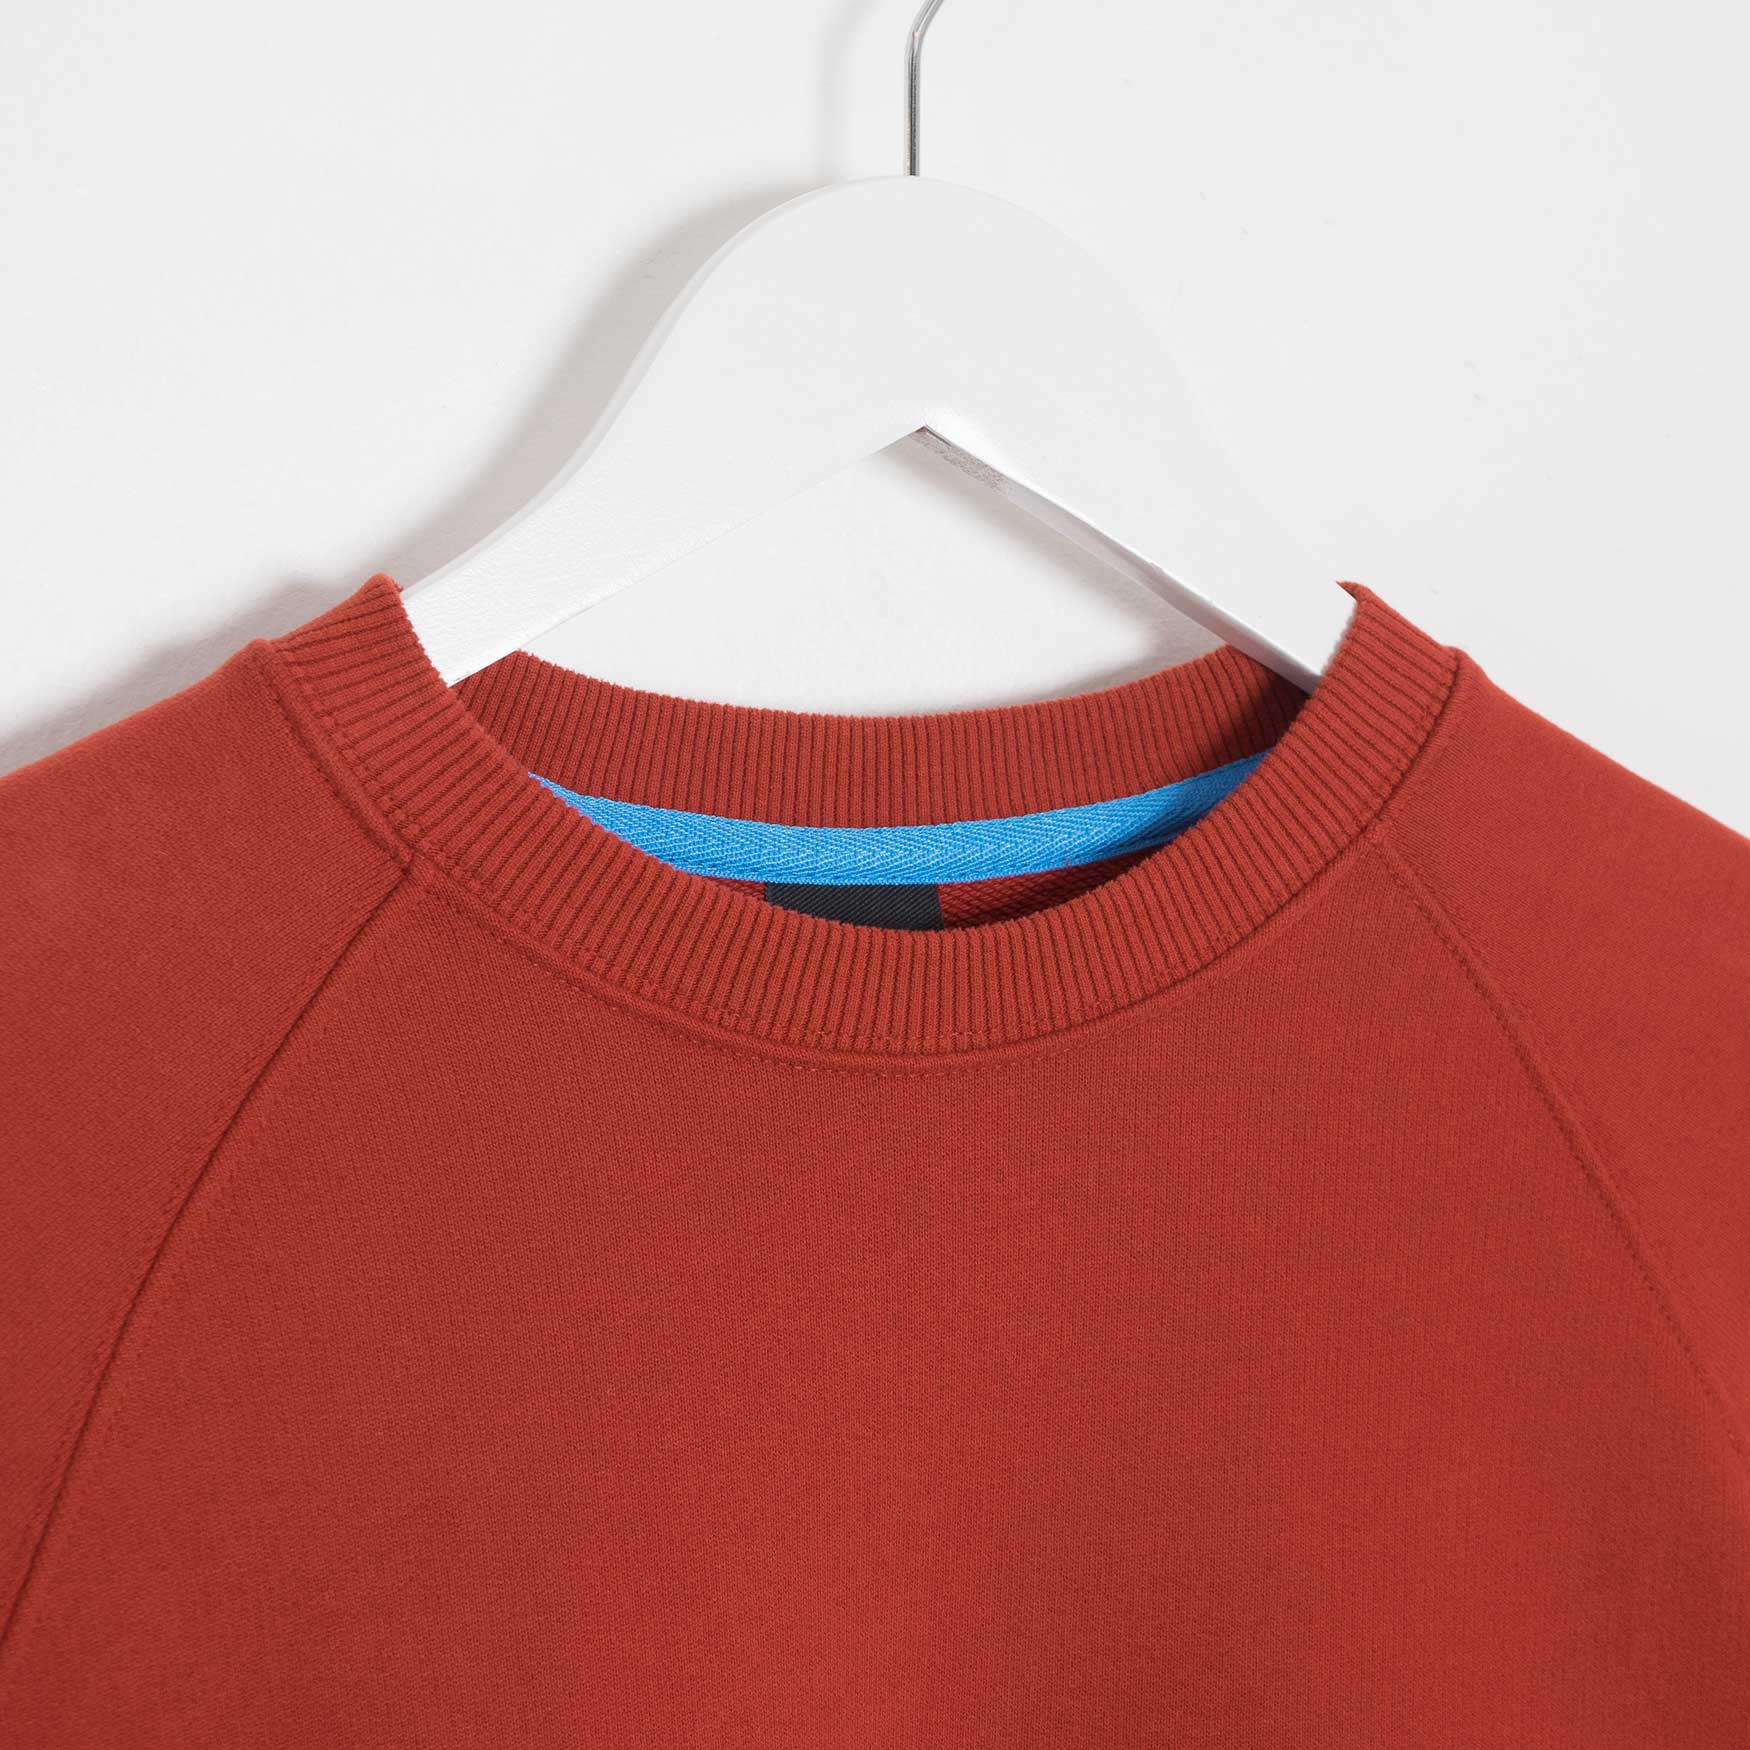 Finisterre Coho Sweatshirt - Red Clay  - CARTOCON